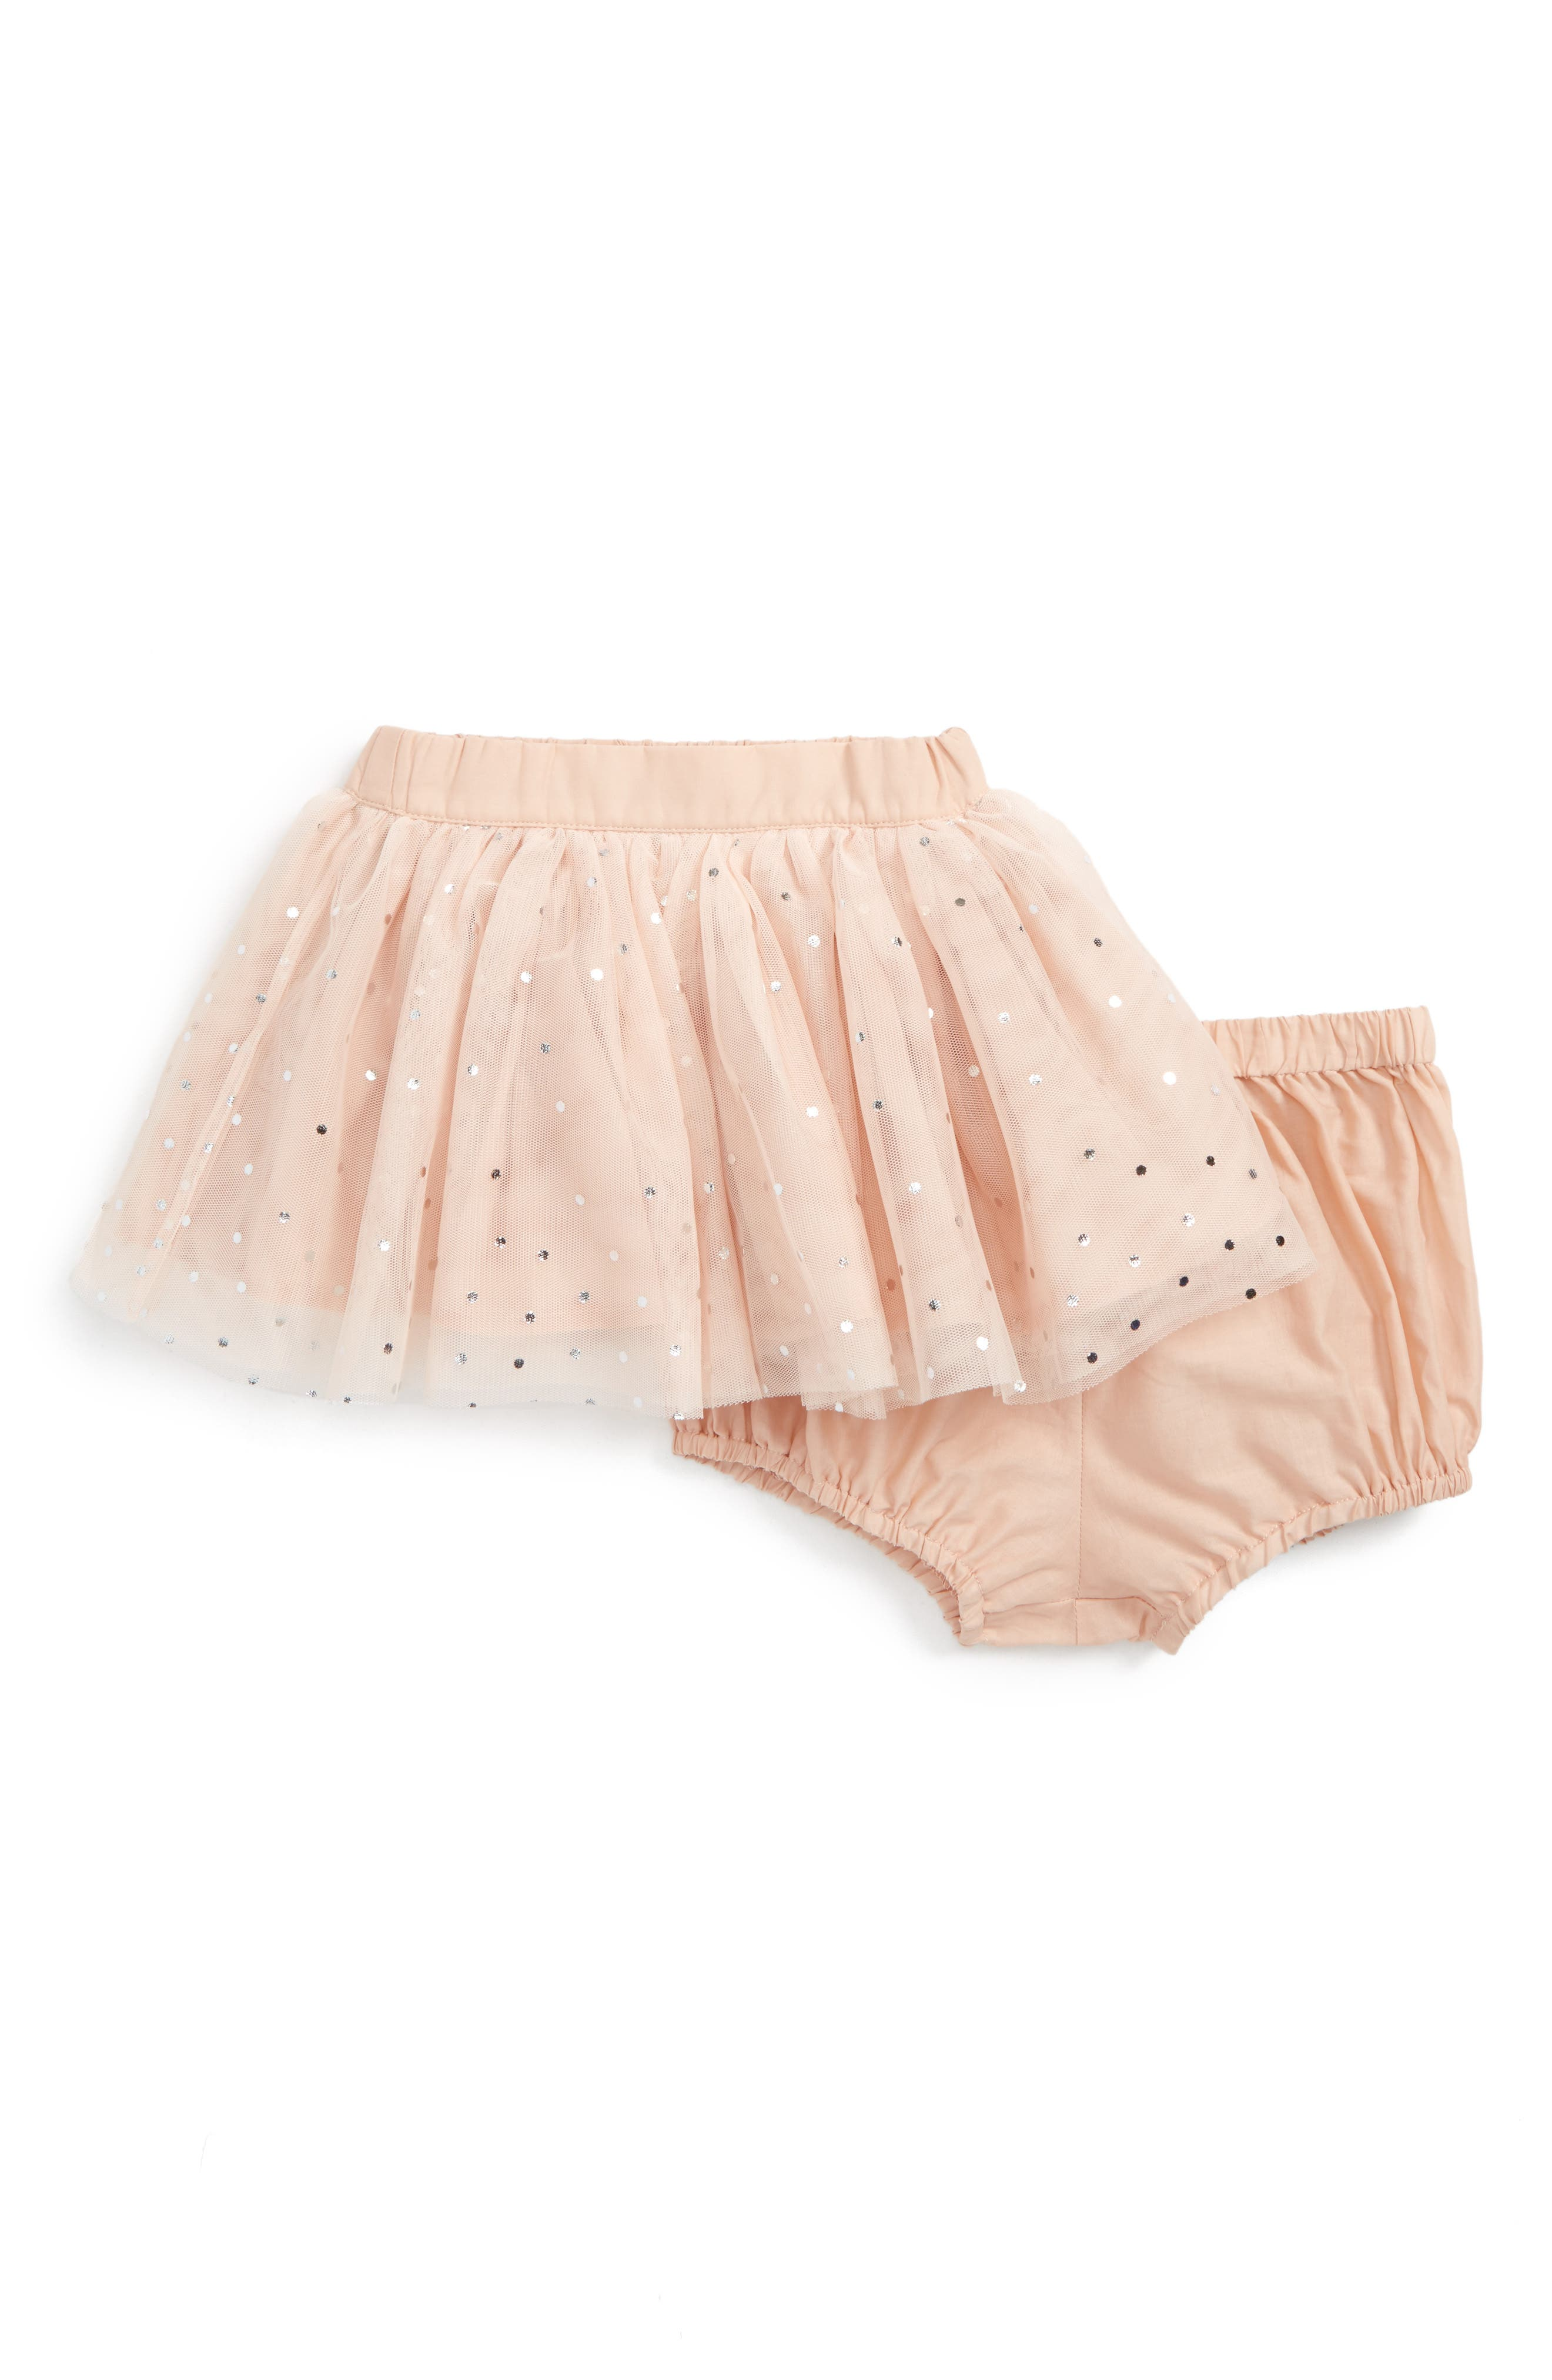 Kids Honey Sparkle Tulle Skirt,                             Main thumbnail 1, color,                             Pearl Pink